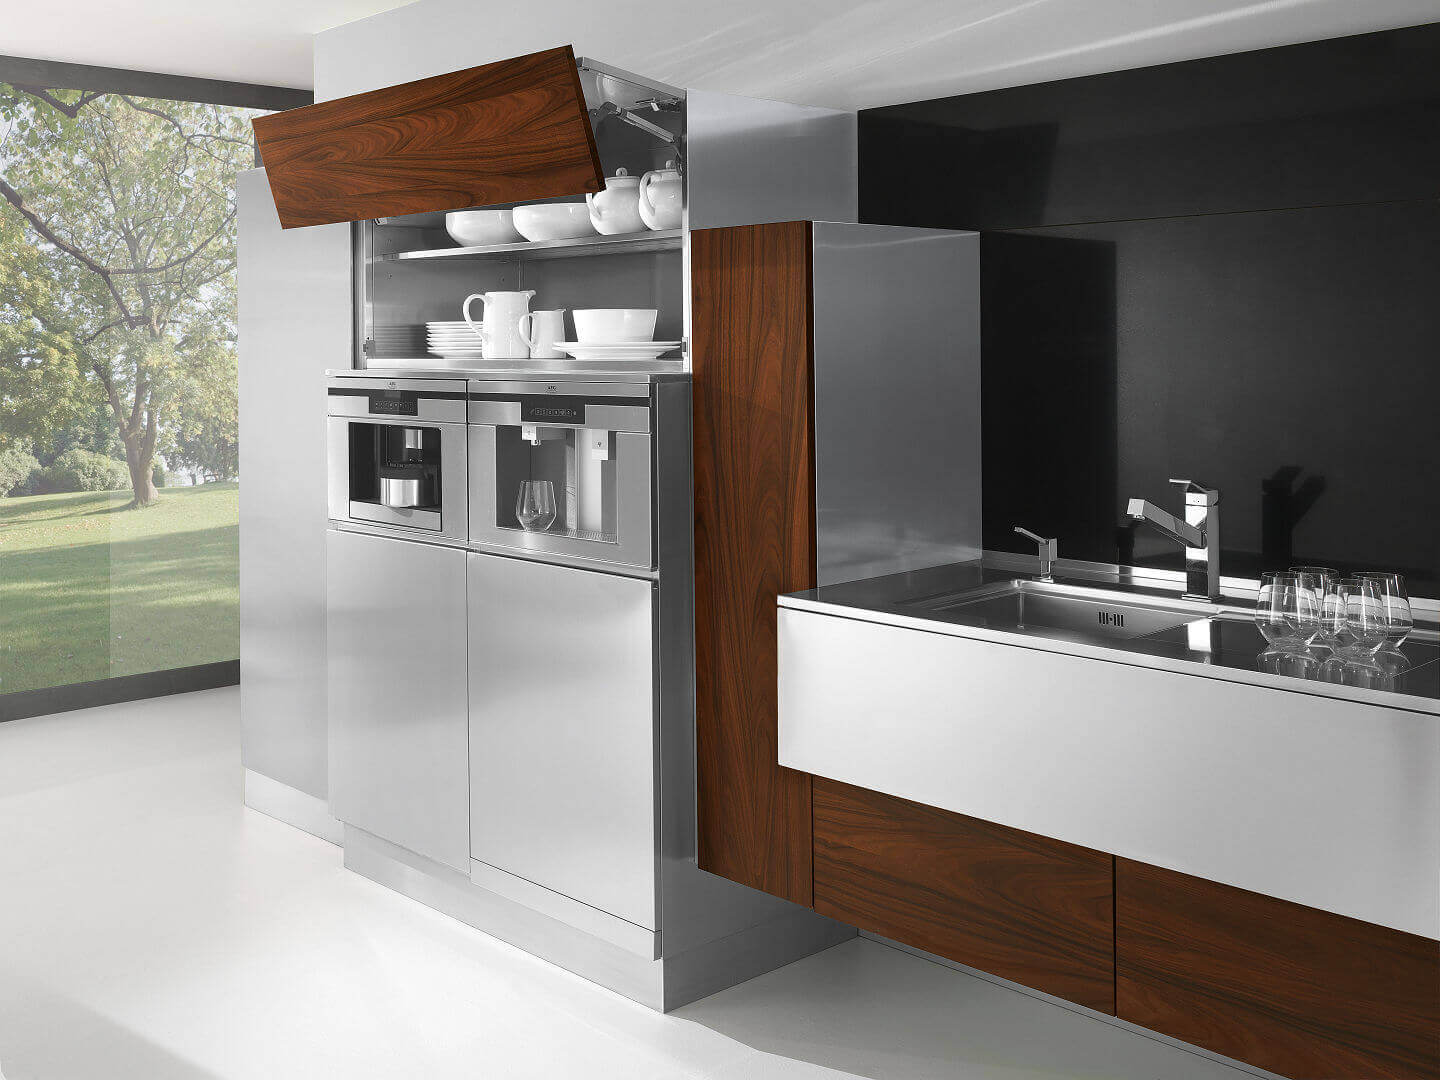 Arca Cucine Italy - Domestic stainless steel kitchens - 24 - Retro - Before